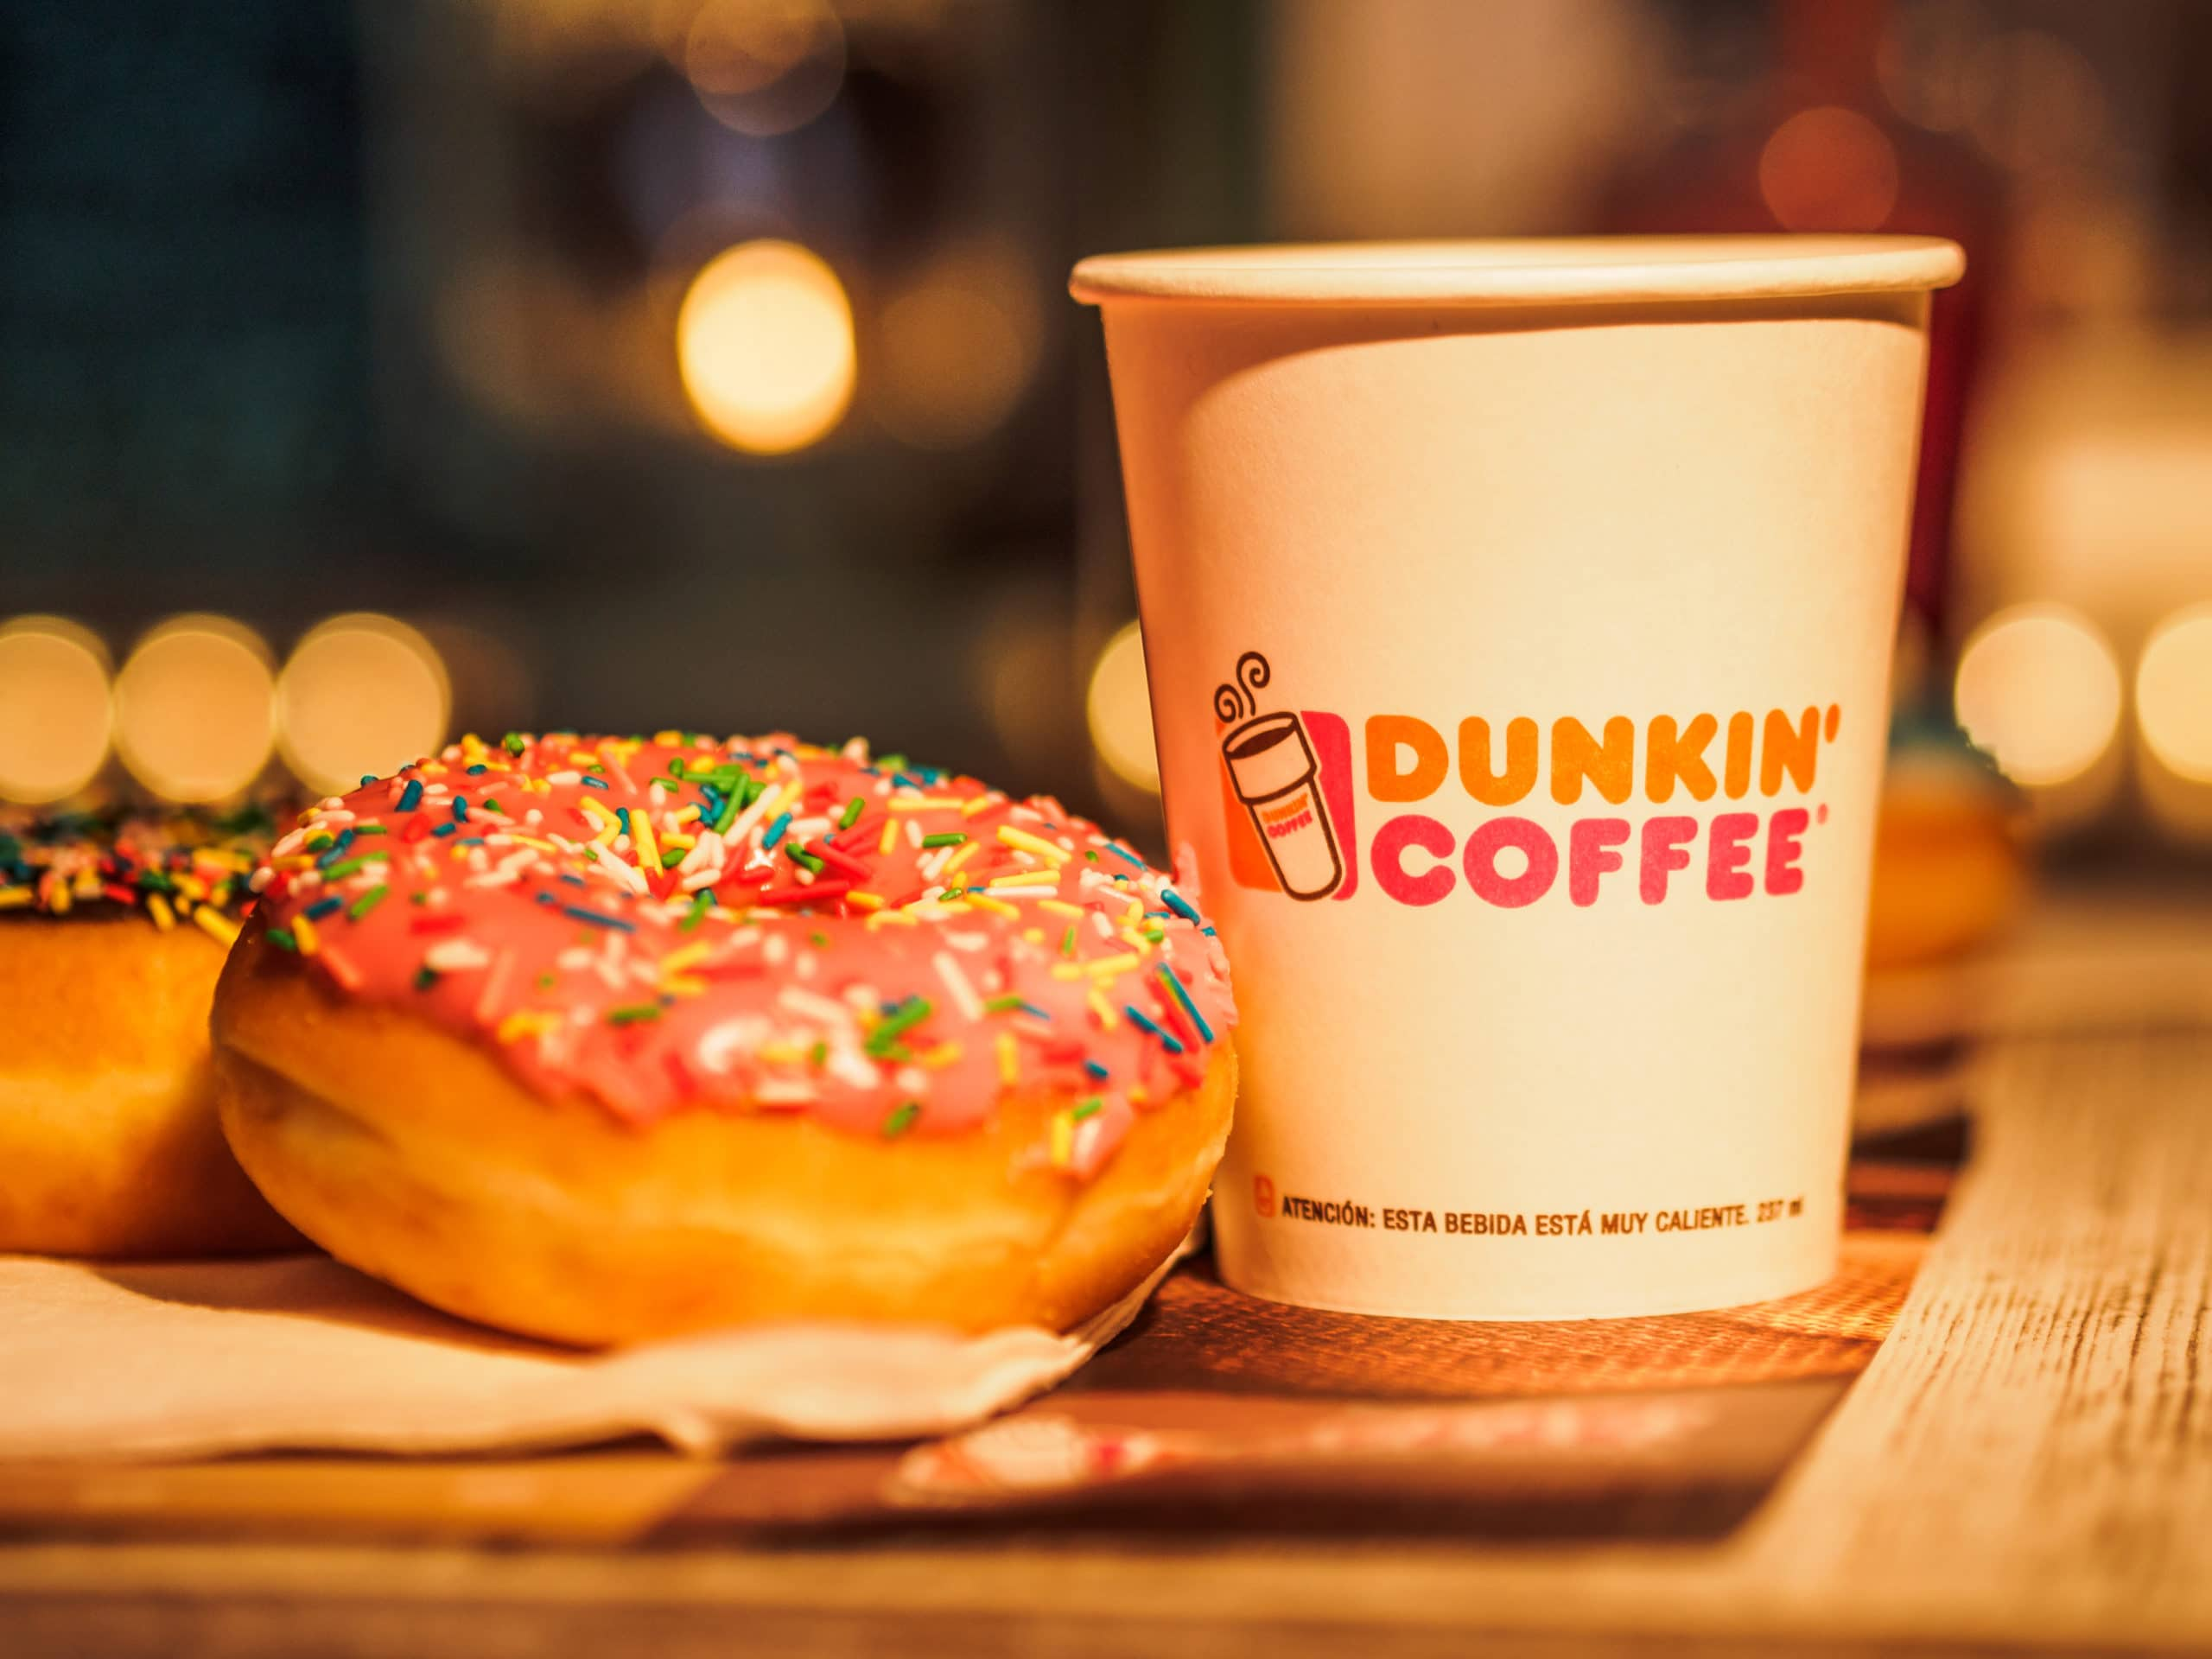 Dunkin' Coffee and Donut